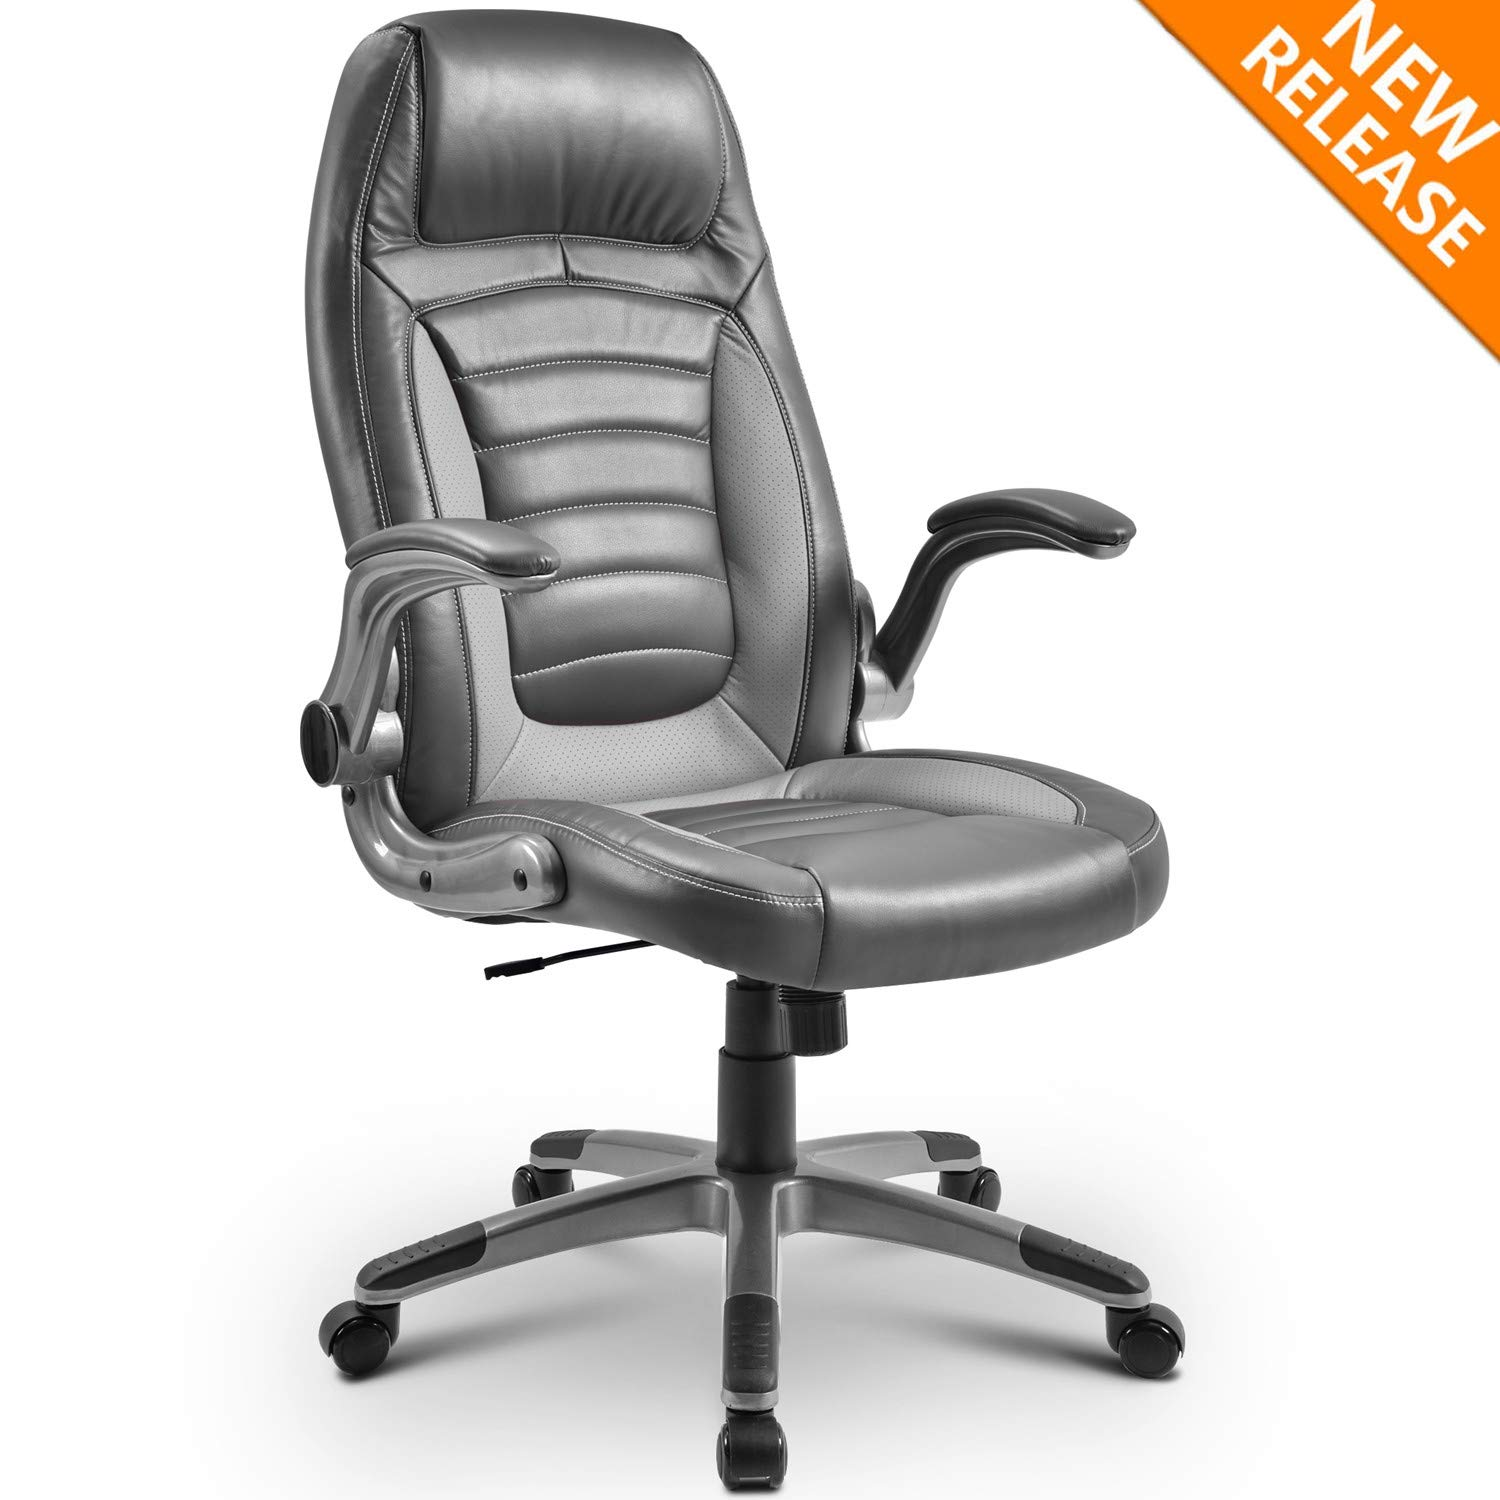 High-Back Executive Office Chair PU Leather Computer Desk Chair Swivel Gaming Chair with Tilt Function, Nylon Base PU Casters with 300lbs Weight Capacity